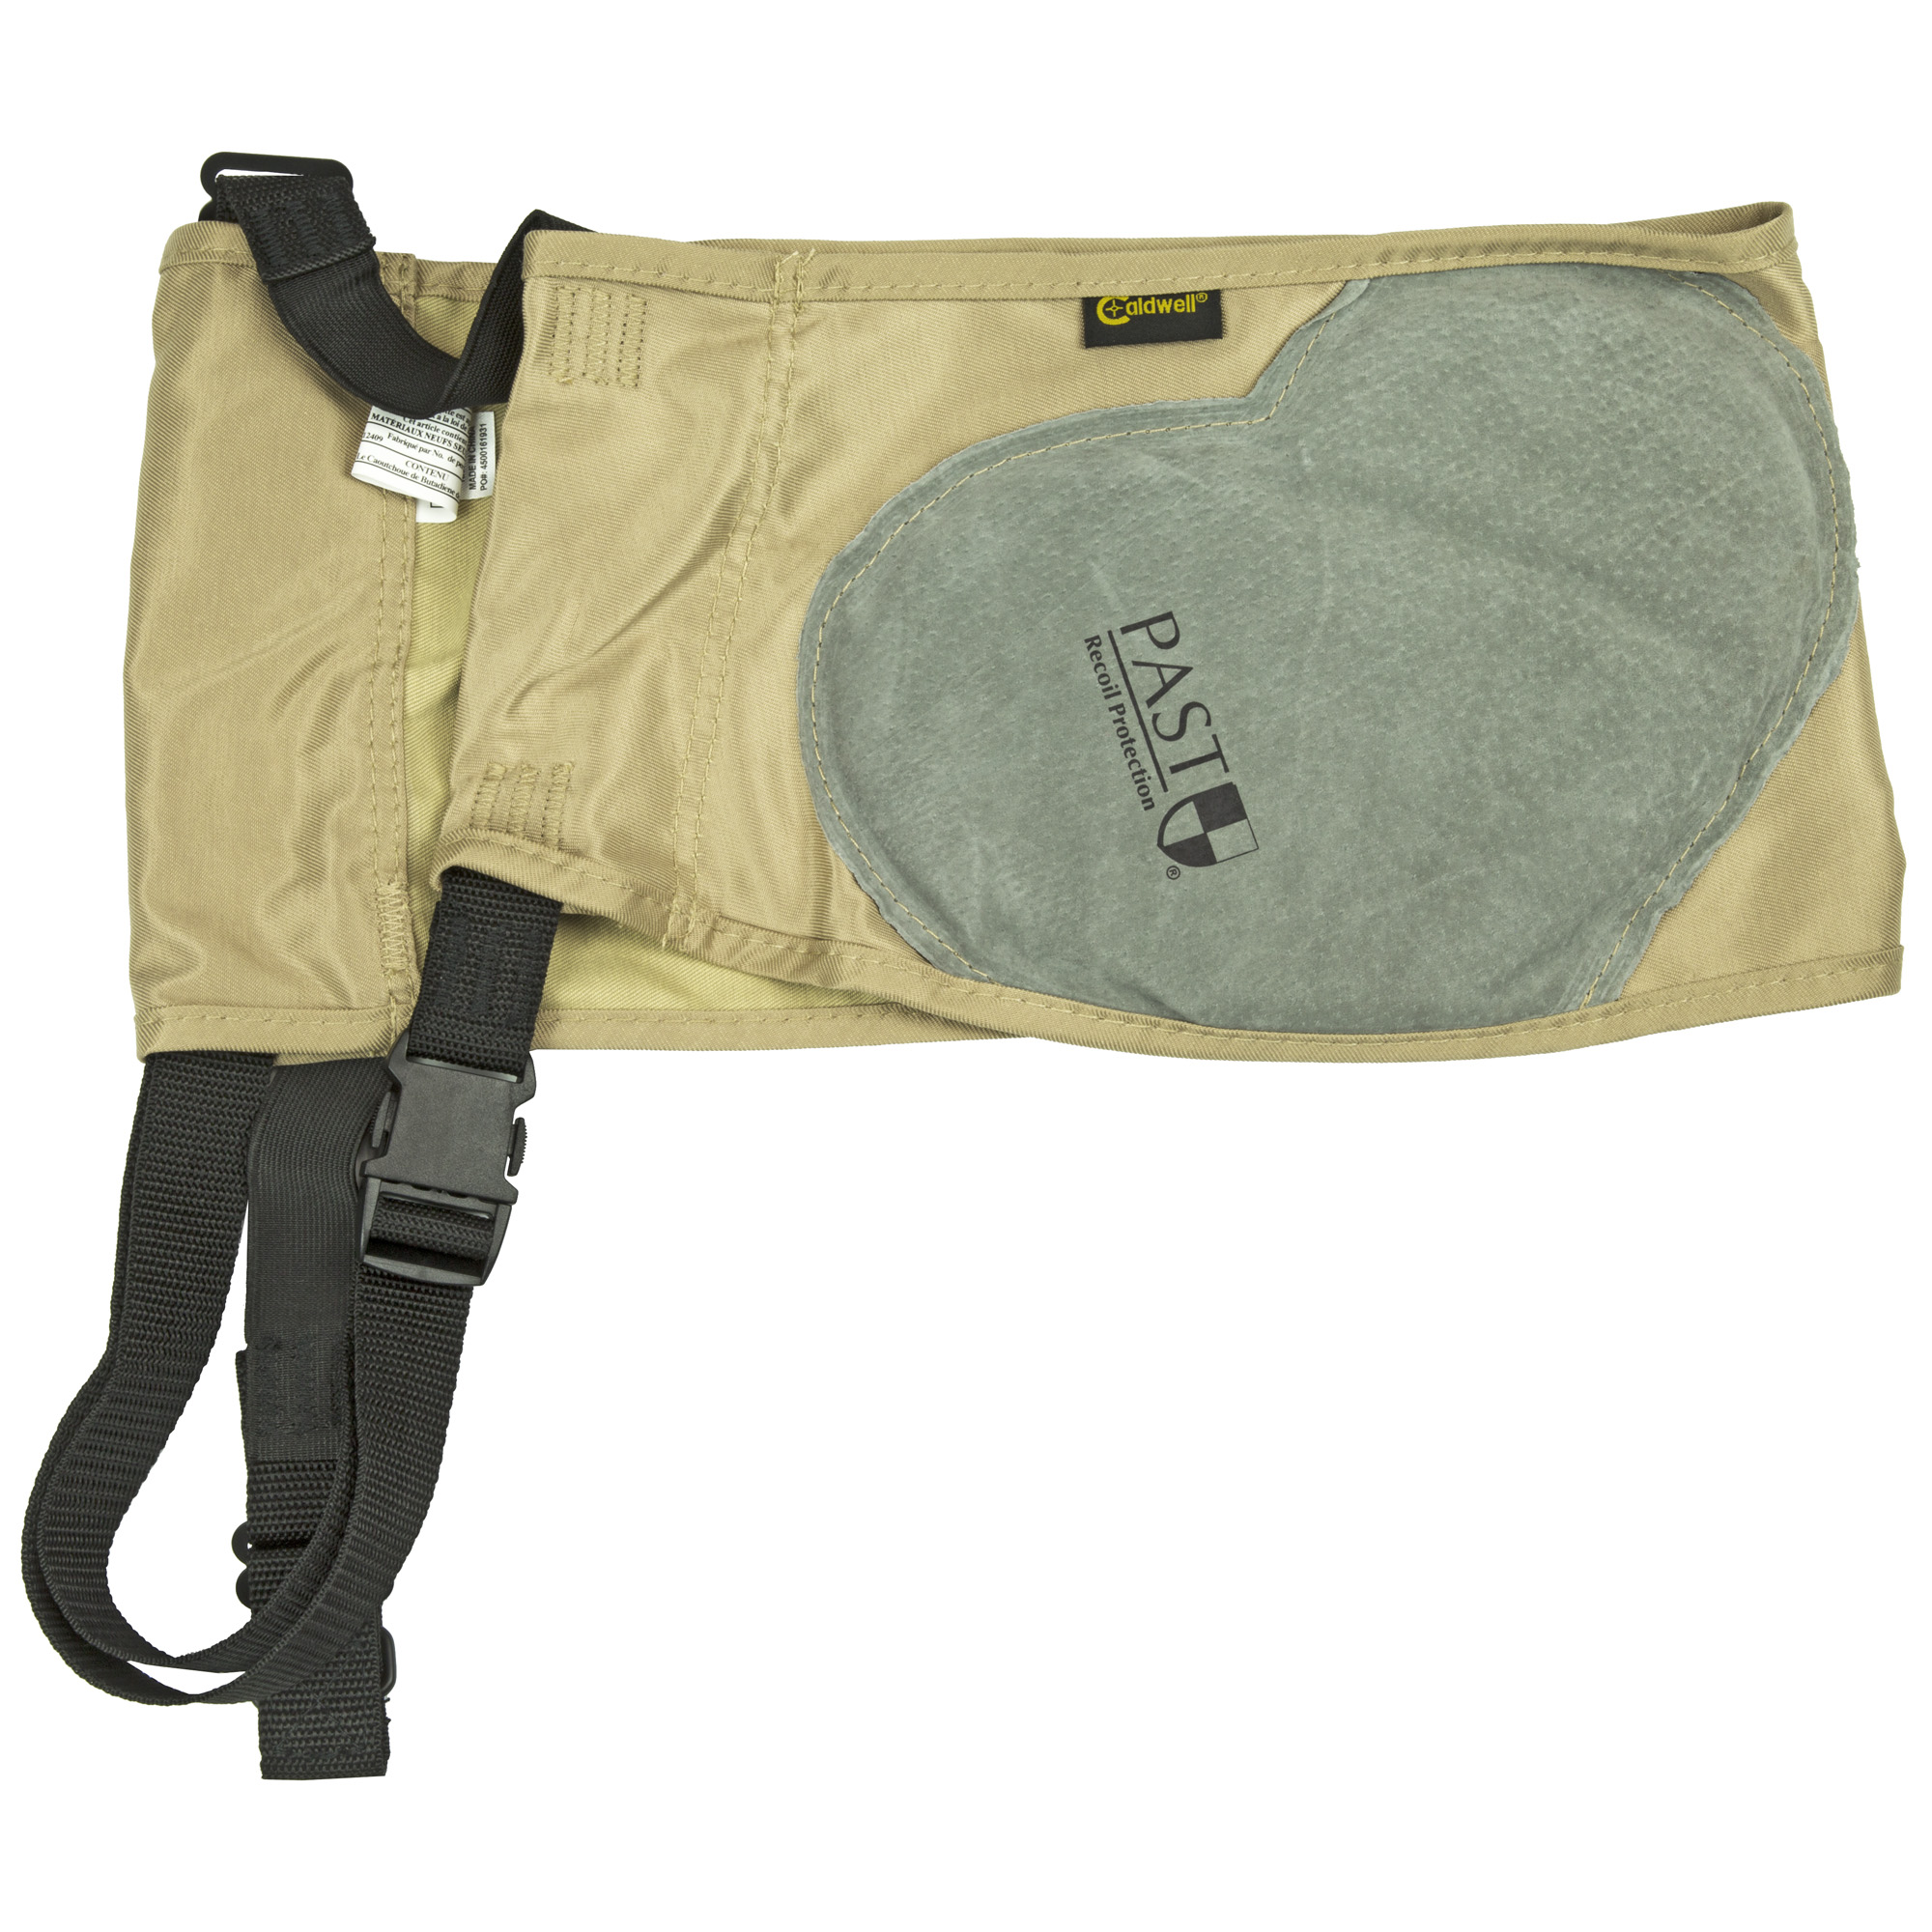 """Caldwell's Magnum Plus Recoil Protection Ambidextrous Recoil Pad is designed to provide the same unparalleled recoil protection as the original Mag Shield but features a larger surface area. The heart-shaped design expands the recoil absorption area"""" extending protection to the upper arm. This quality is especially valuable in those cases when the rifle or shotgun is not shouldered perfectly. The size and shape of the Mag Plus Shield creates the perfect combination of function and comfort. This time-tested design has become a favorite for shooters around the world. The shield's thick energy-absorbing pad provides excellent protection for calibers ups to 300 Winchester Magnum."""